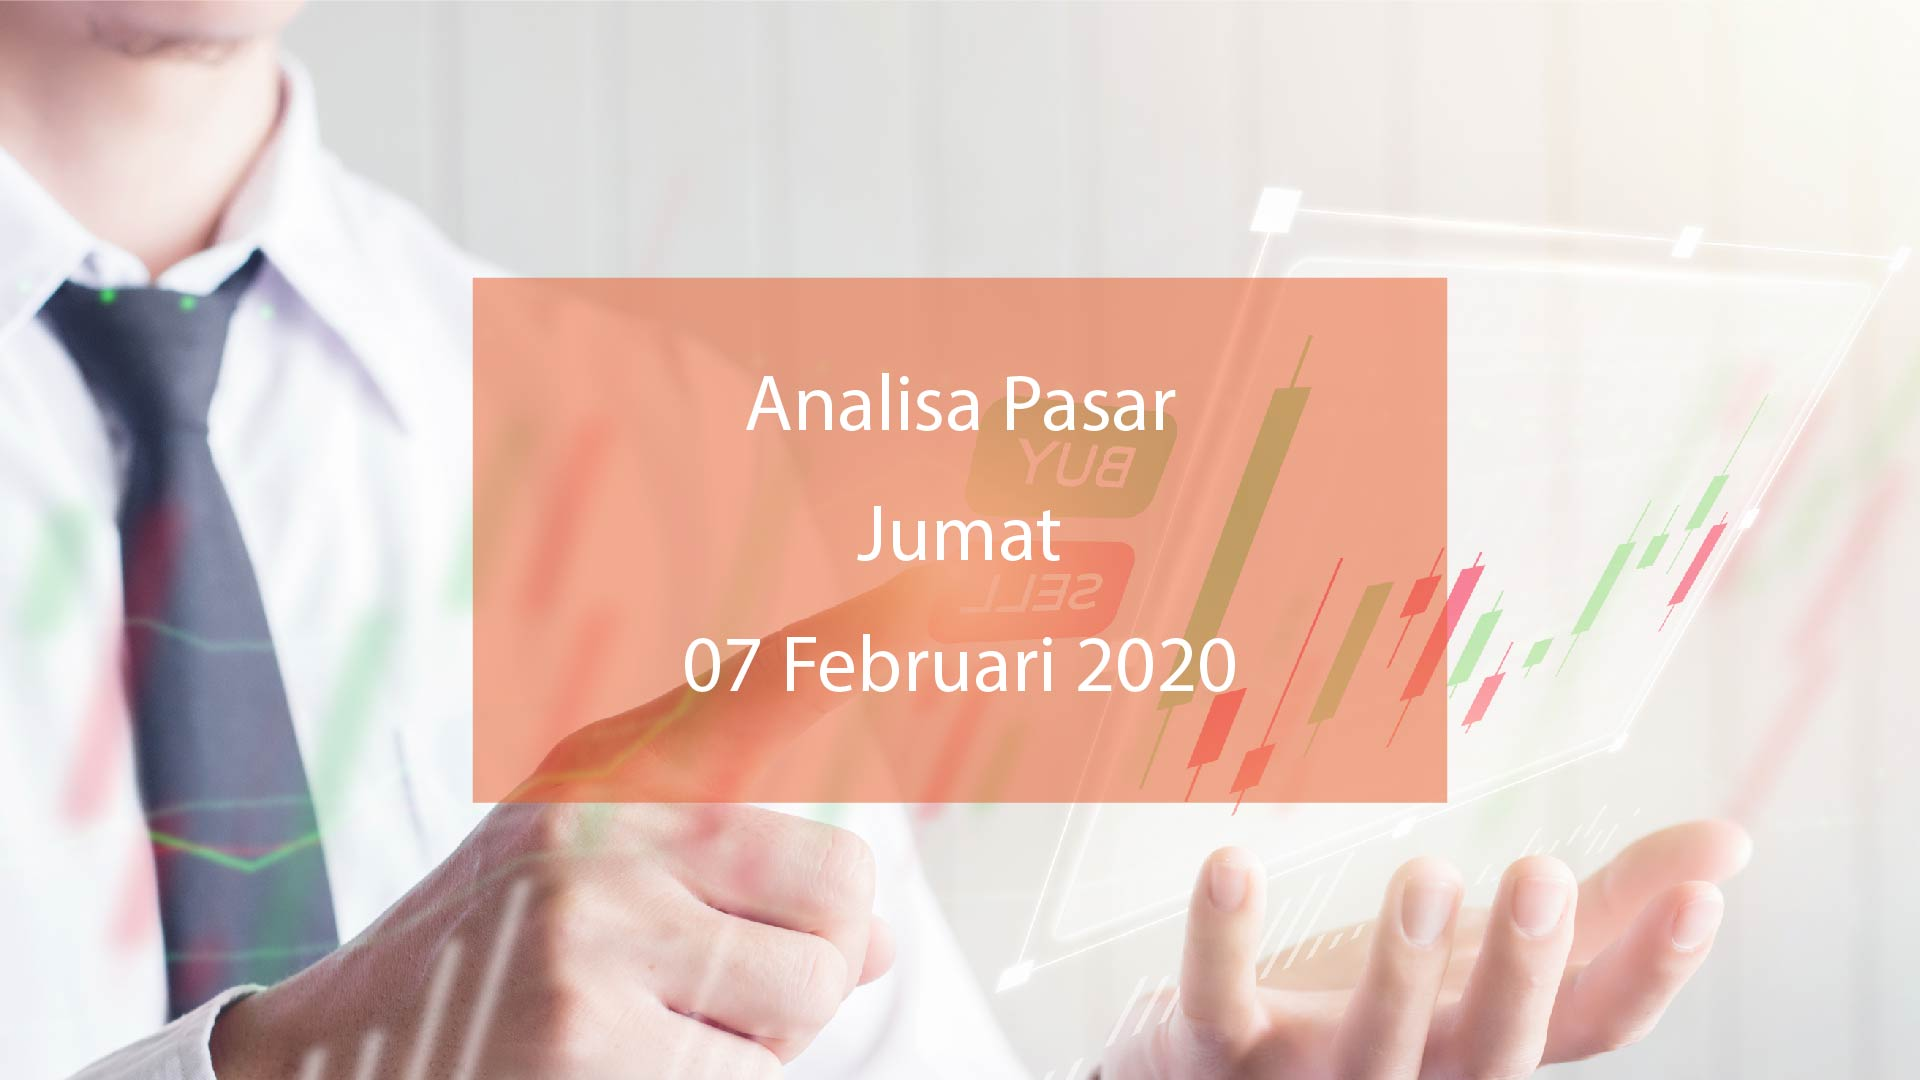 analisa pasar hsb 7 feb 2020